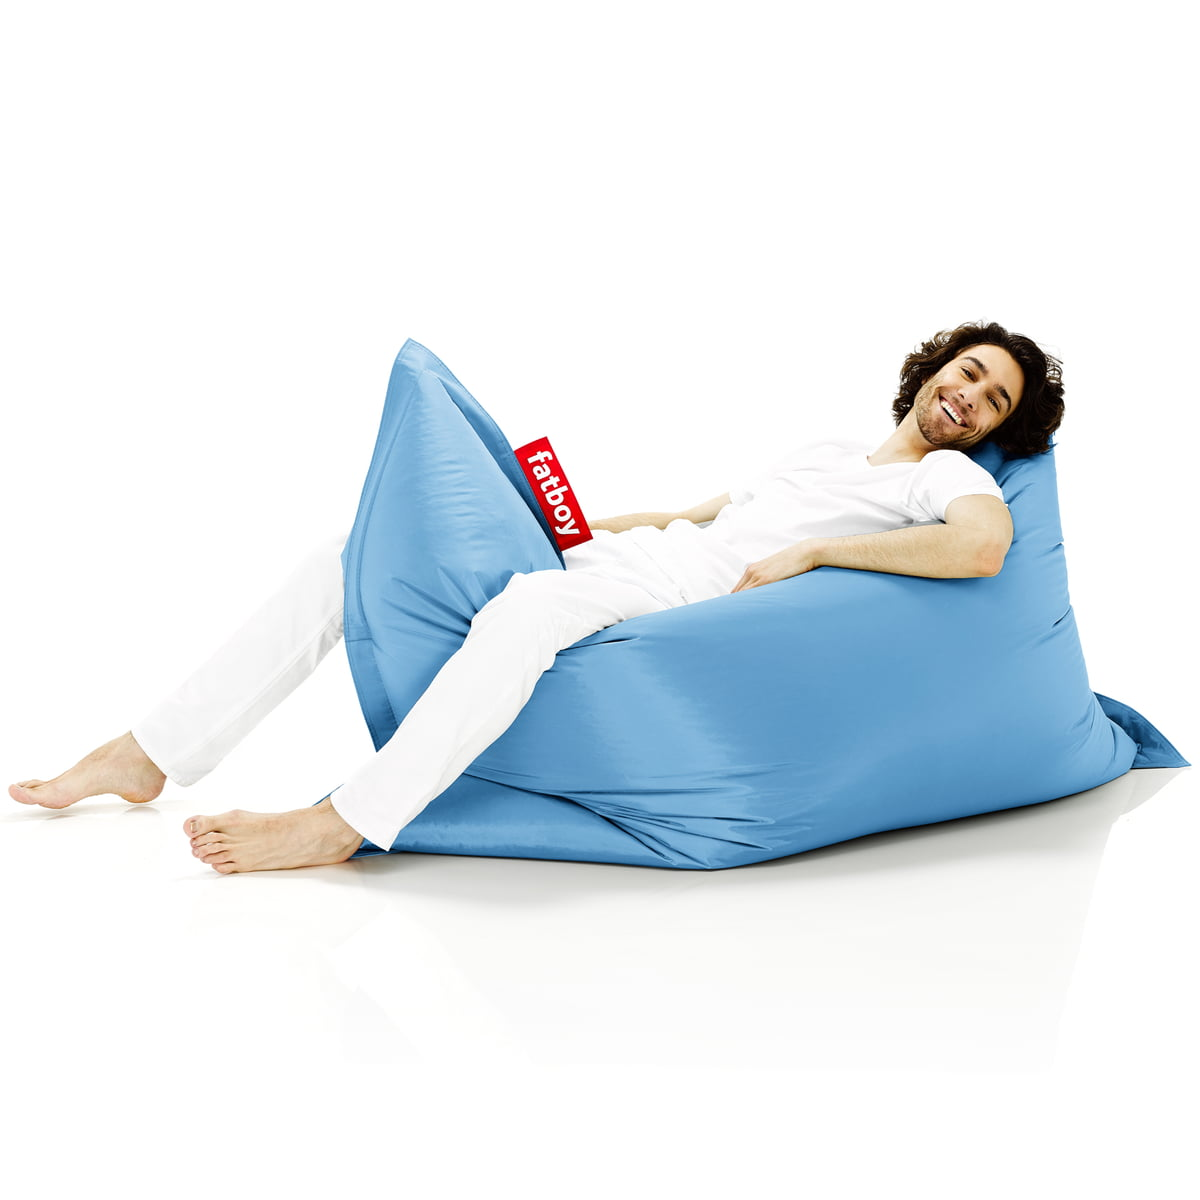 Fatboy Original Beanbag Situation With Woman On Light Blue